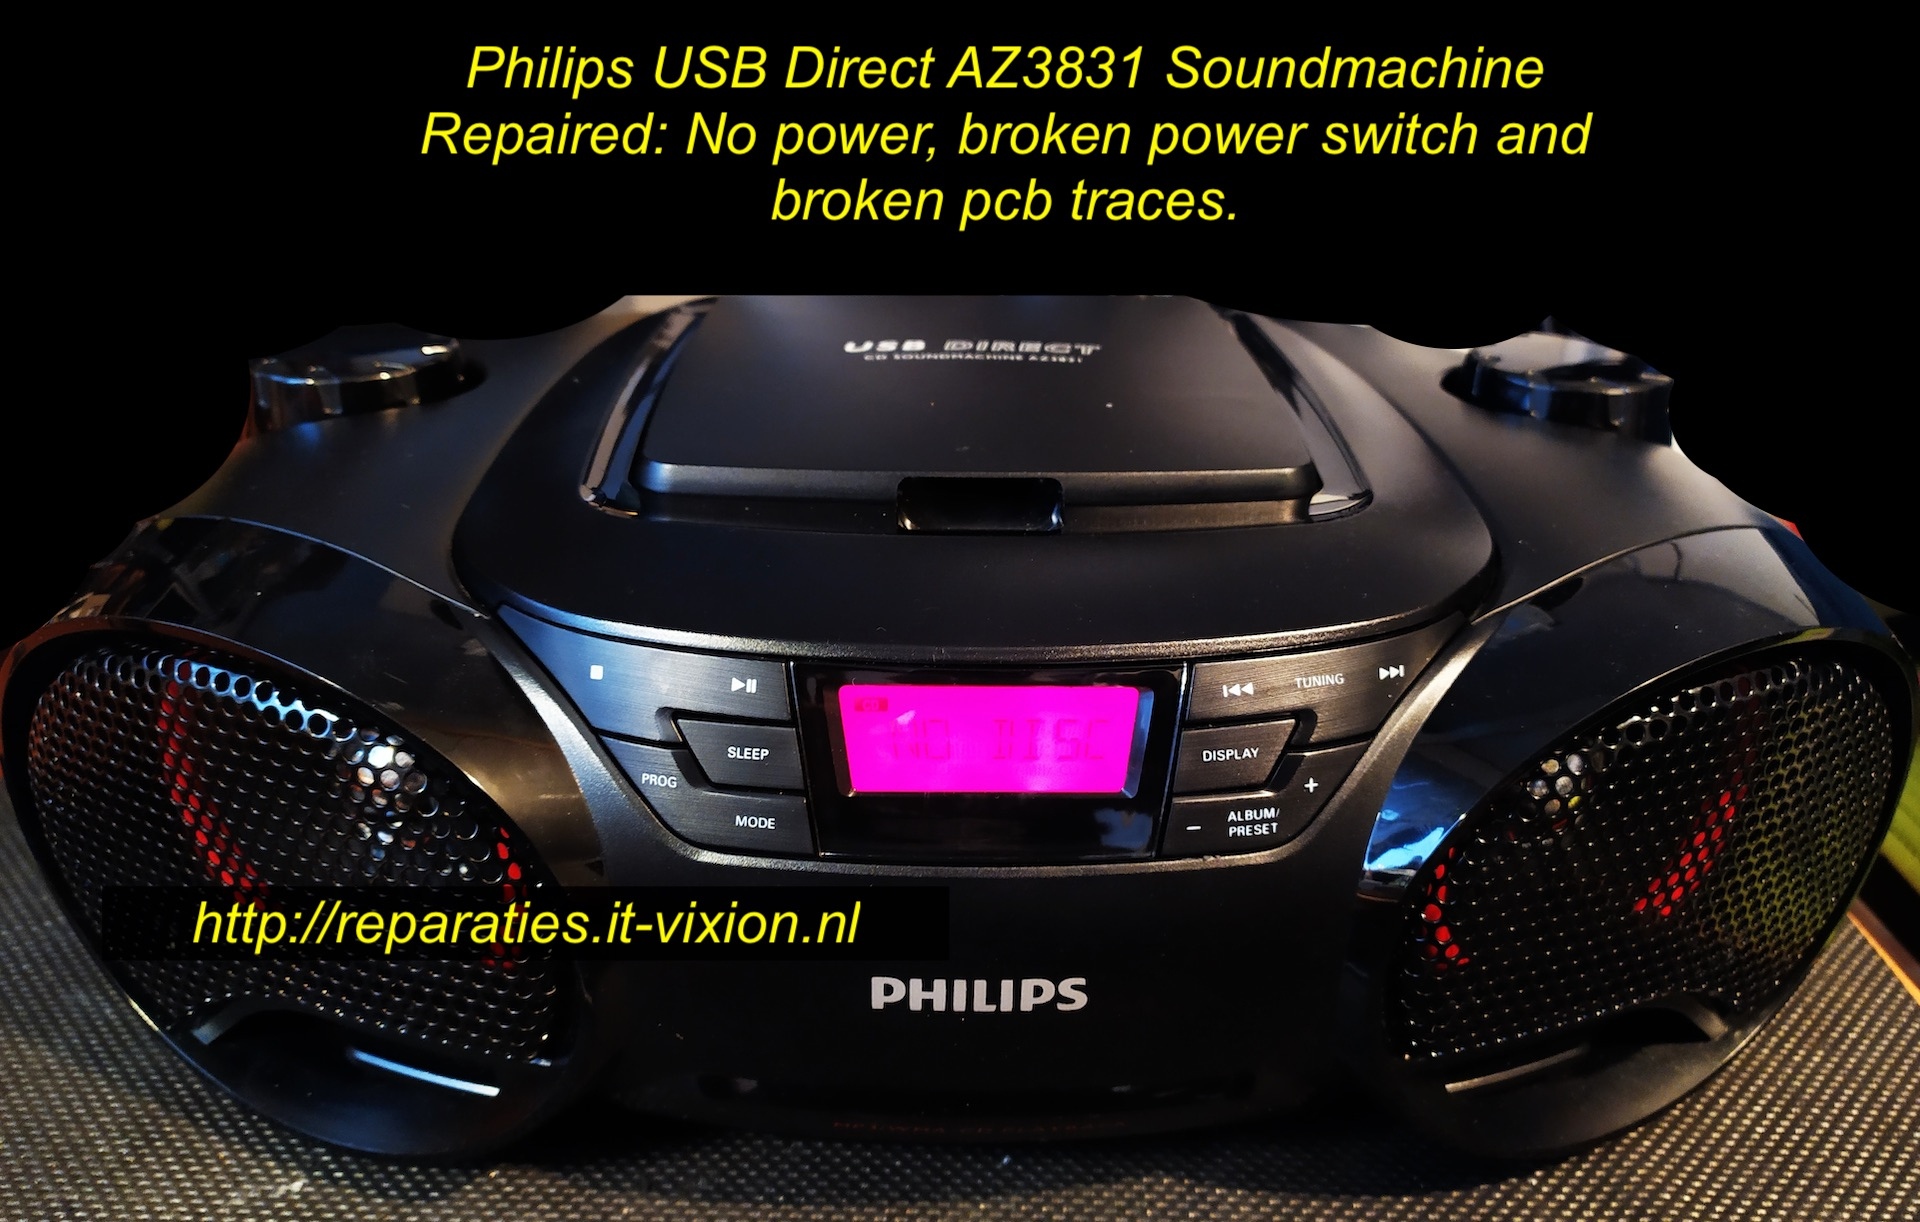 Philips usb az3831 soundmachine